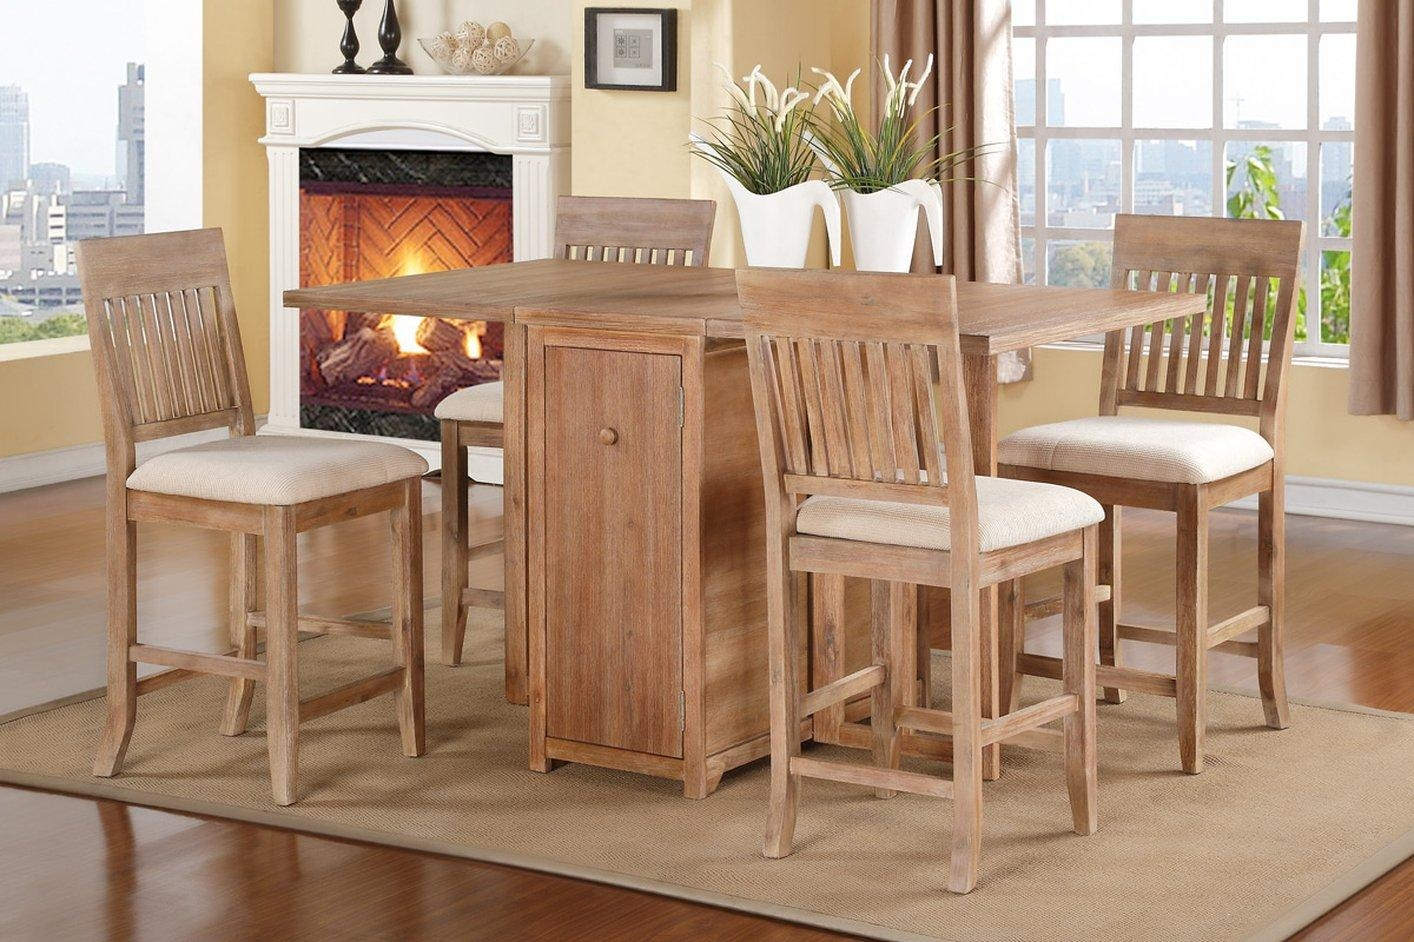 Poundex F2418 Brown Wood Dining Table – Steal A Sofa Furniture Throughout Dining Table With Sofa Chairs (Image 16 of 20)